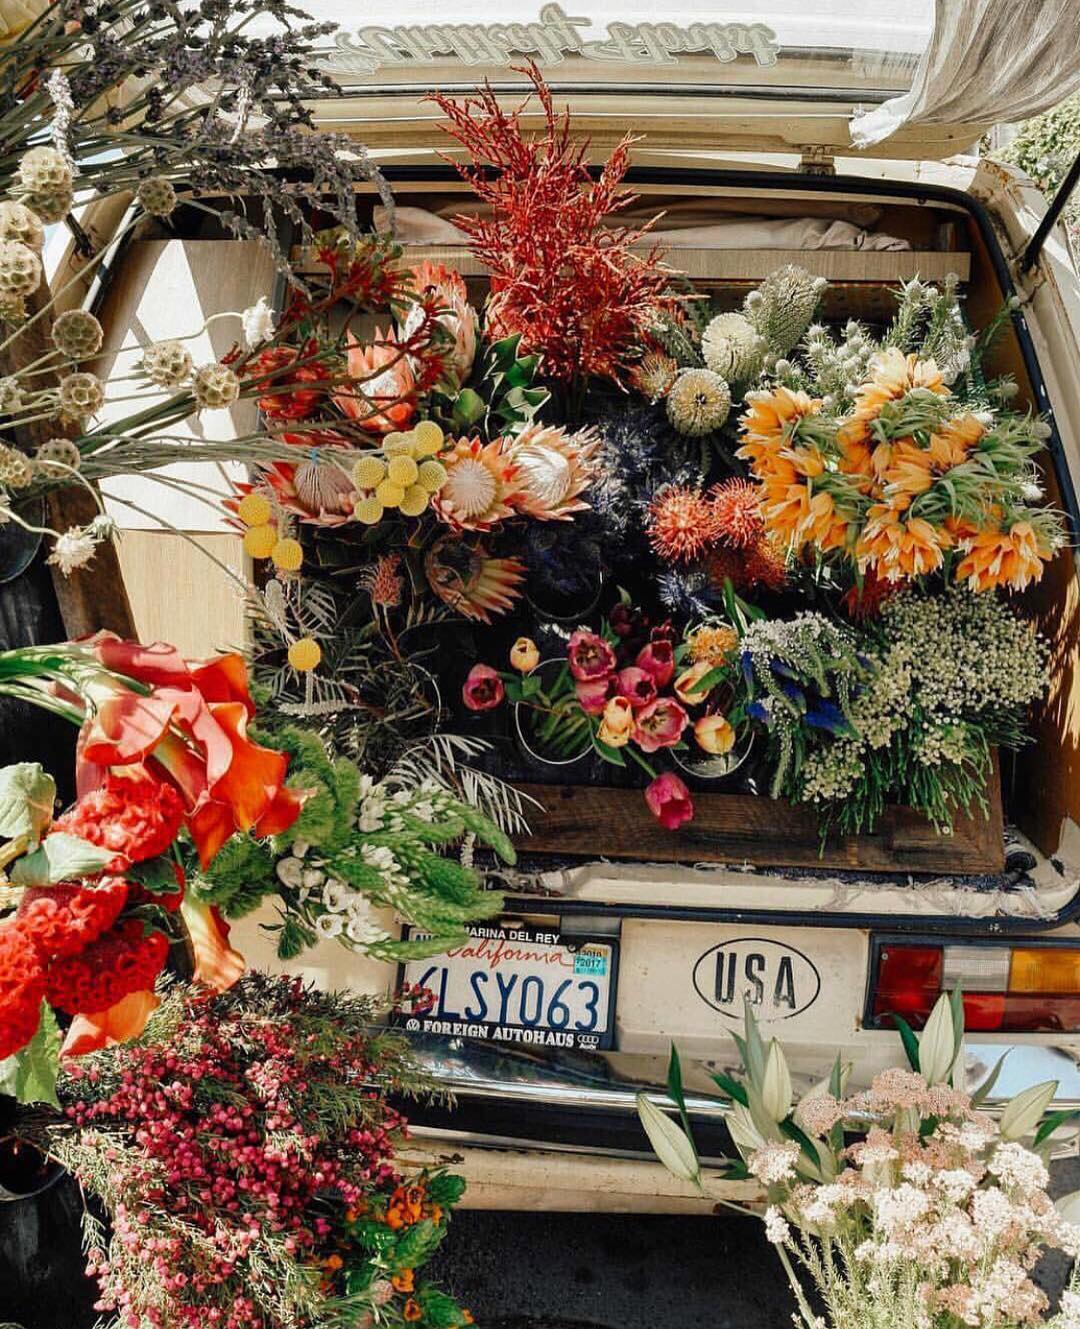 trunk-full-of-flowers.jpg